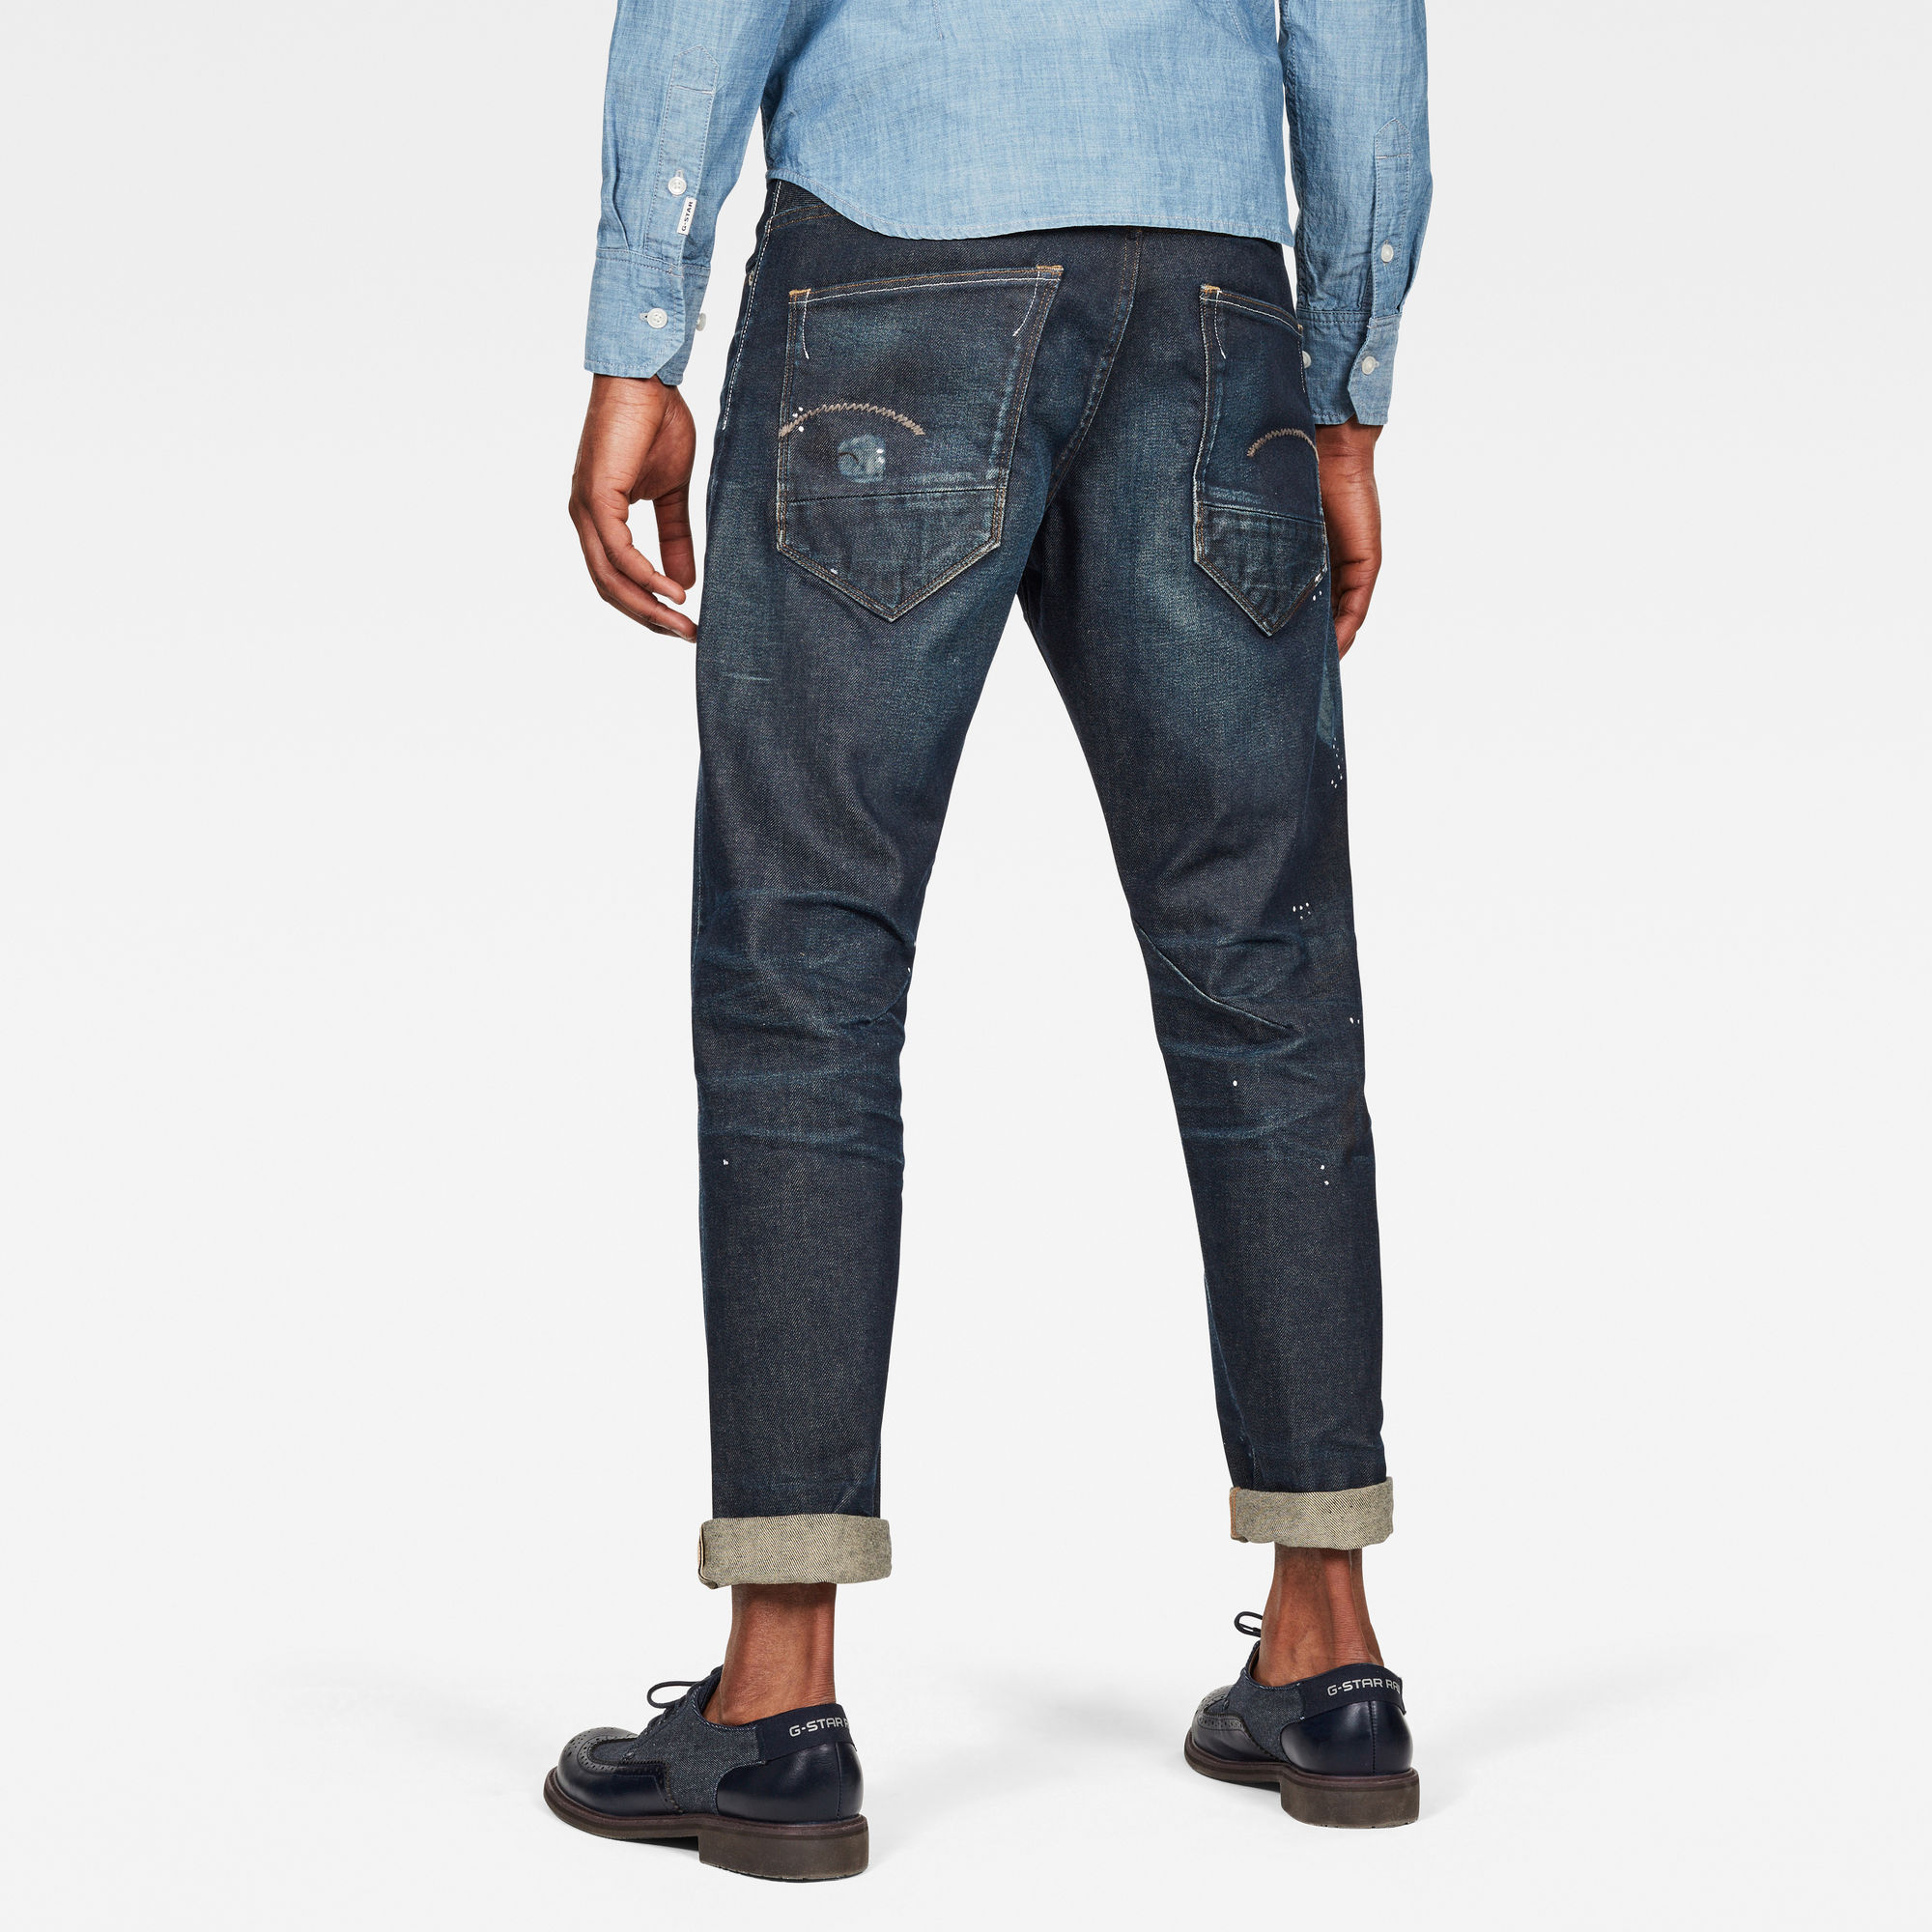 G-Star RAW Morry 3D Relaxed Tapered Jeans